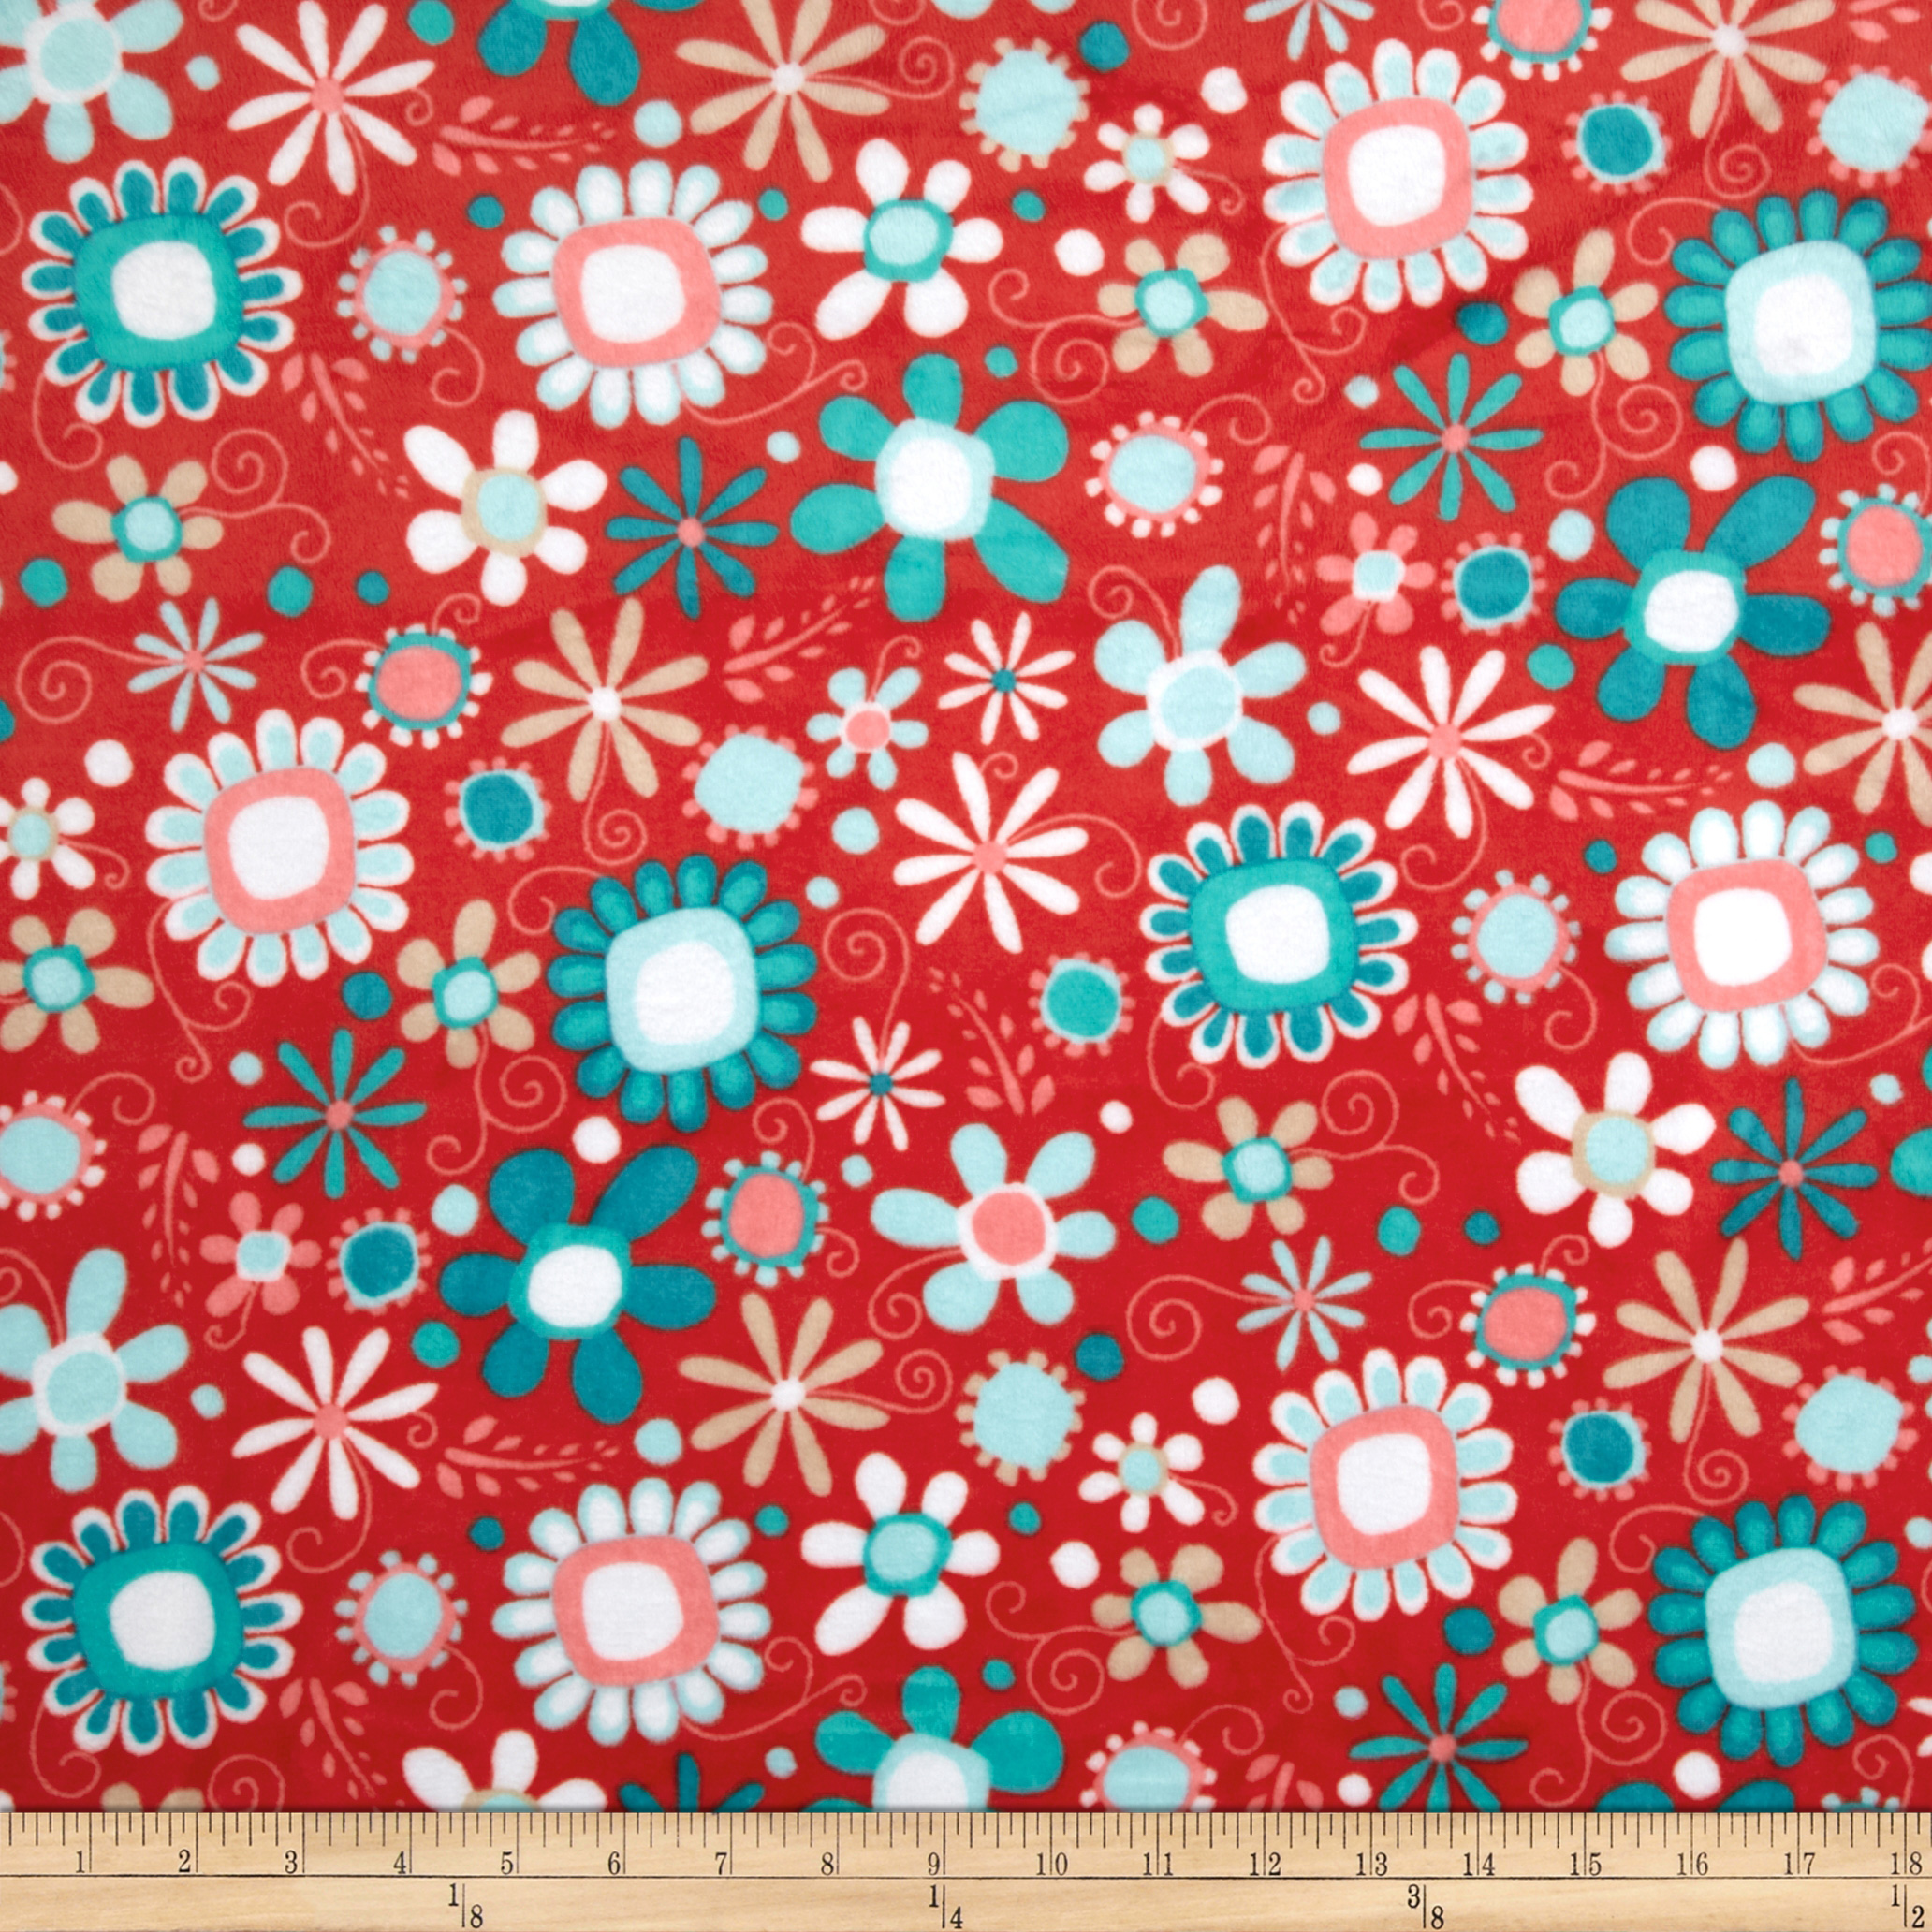 Adorn-it Minky Cuddle Daisy Bouquet Coral Fabric